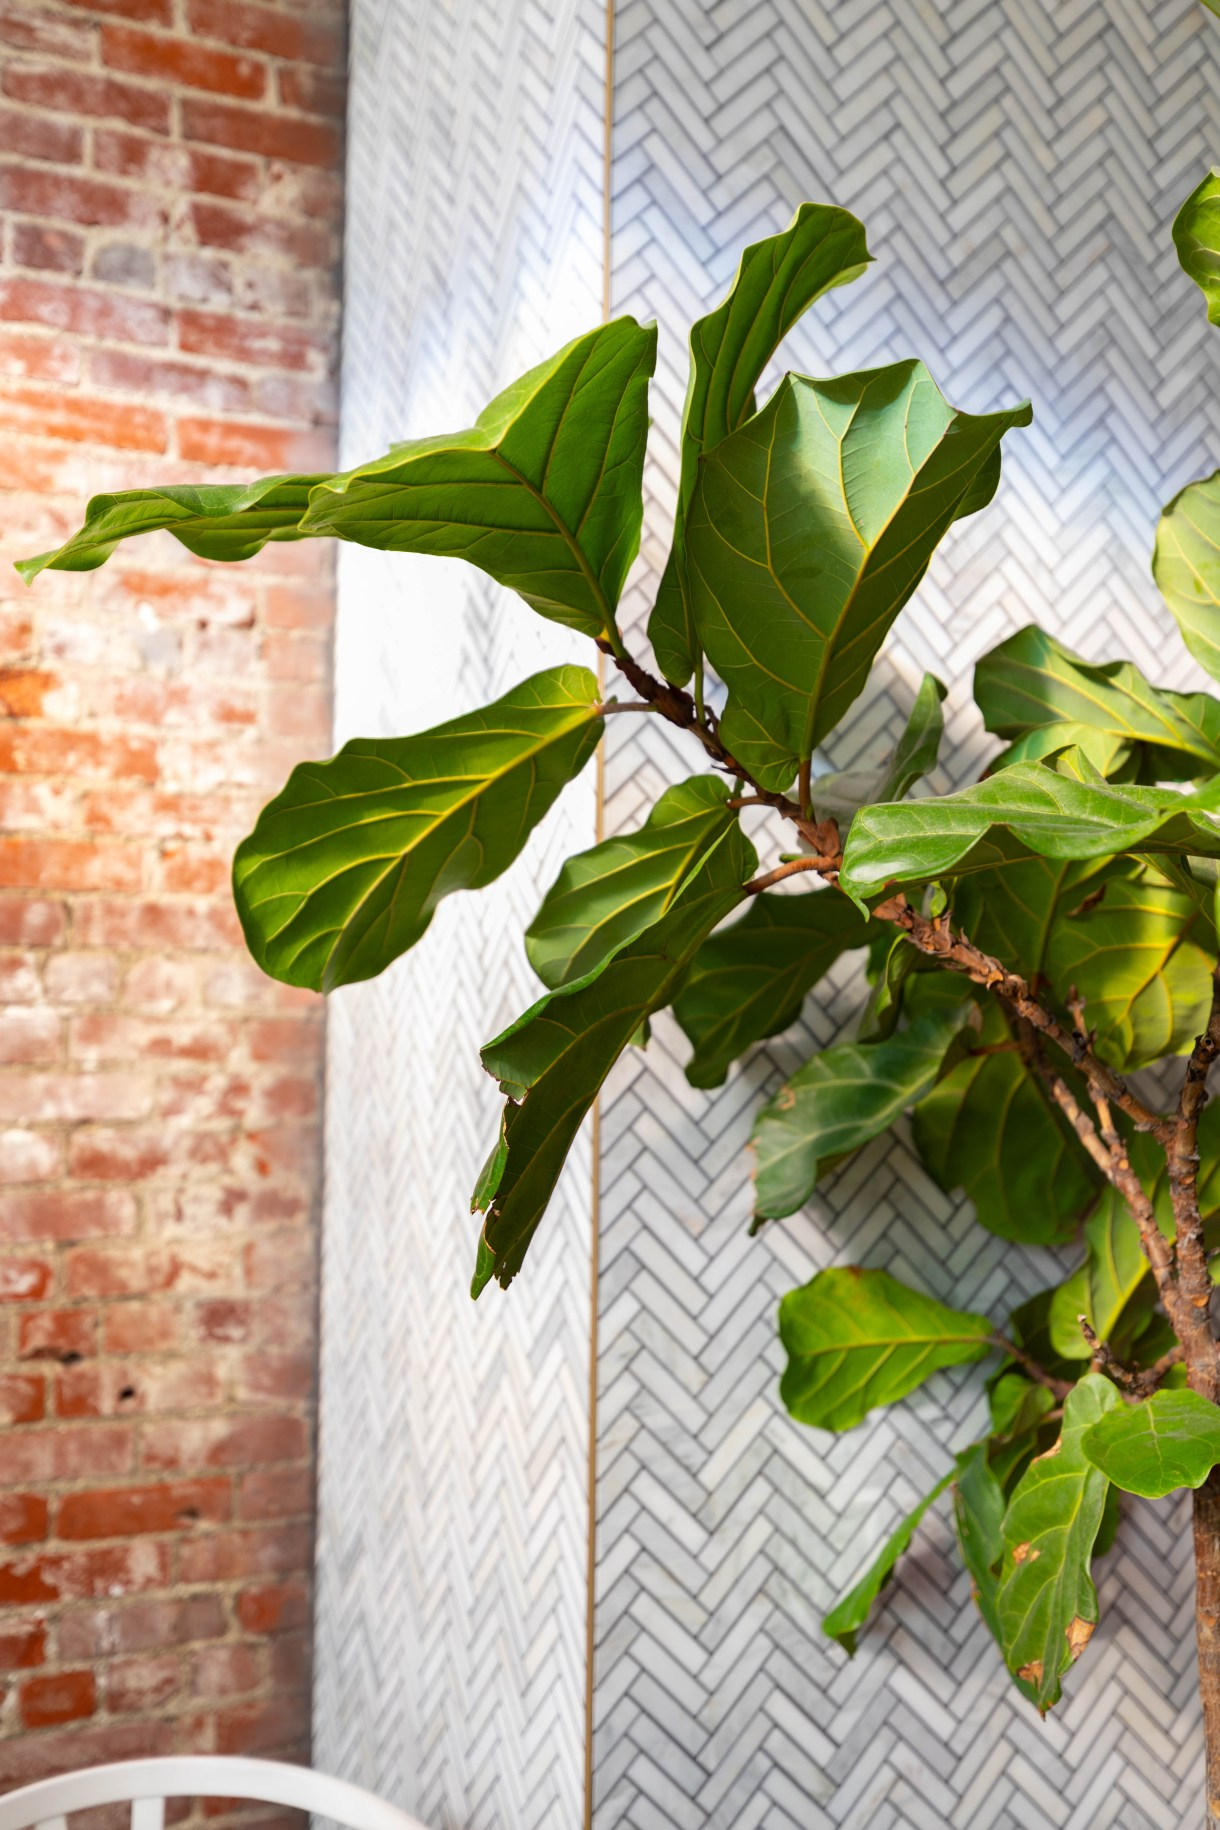 Fiddle Leaf Fig Garden Table Farm-Table Transparent Plant Based Dining in Indianapolis Luxury Restaurants of the World